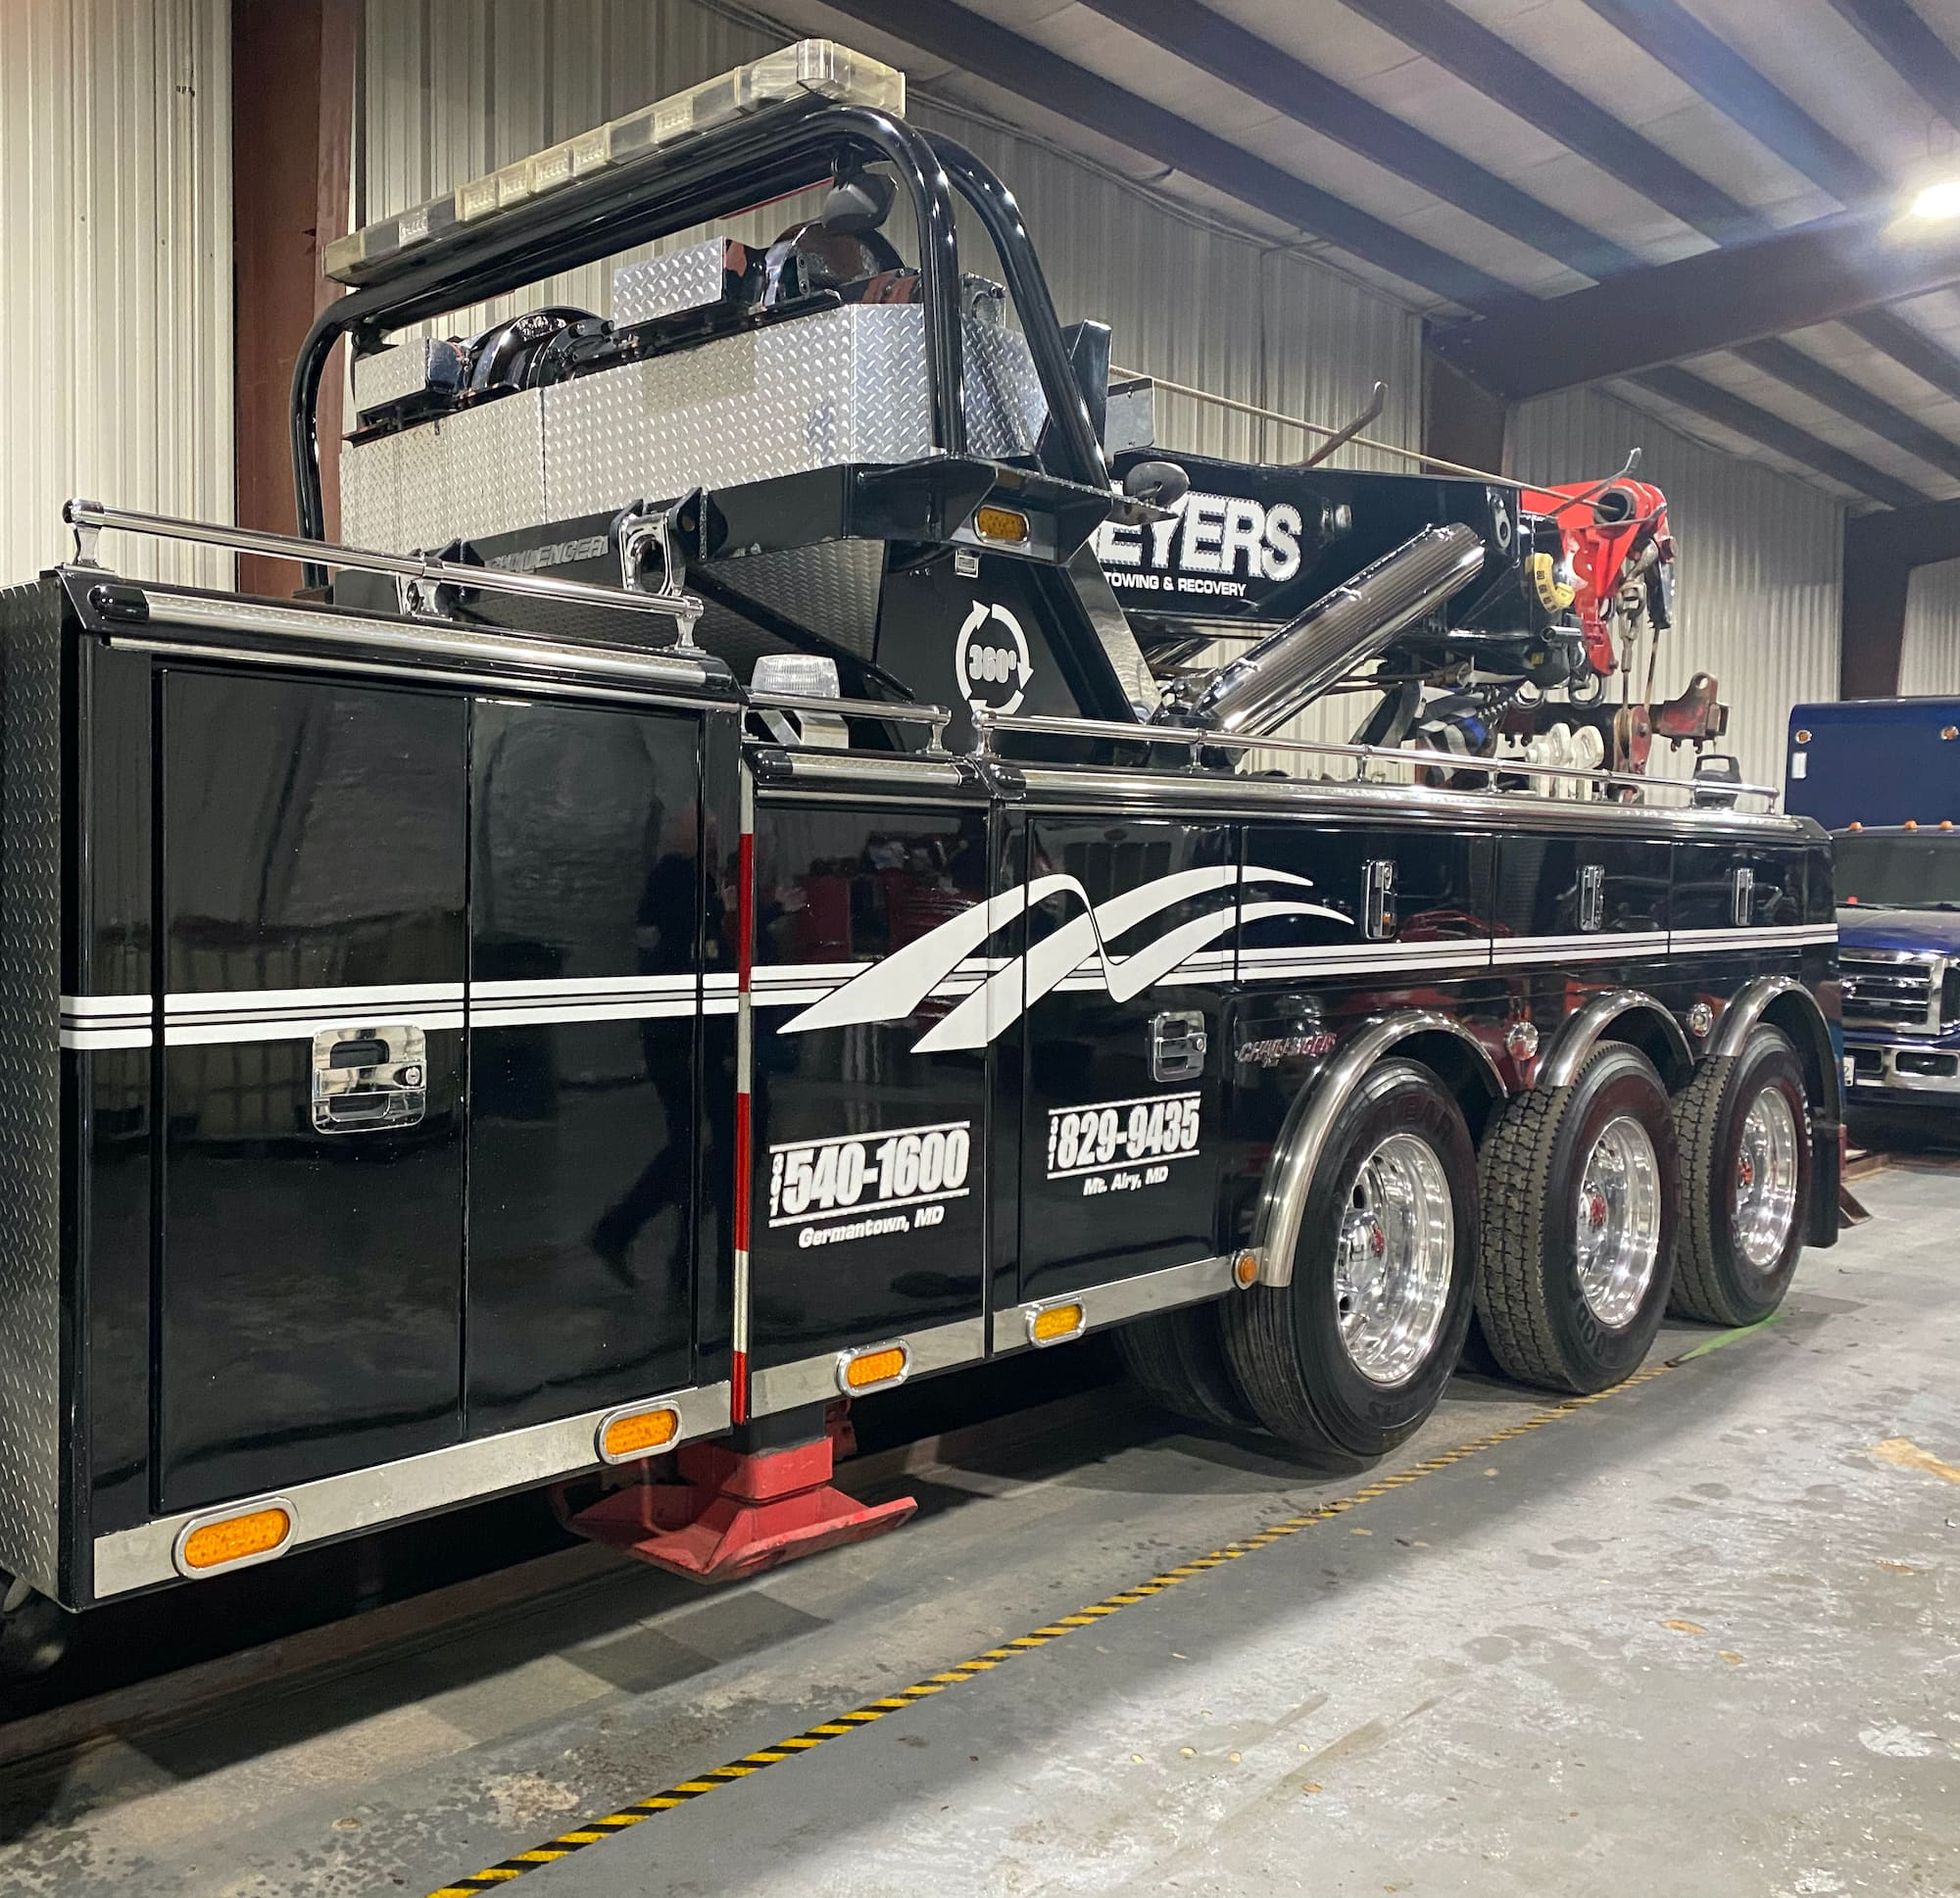 Geyers Heavy duty truck rig